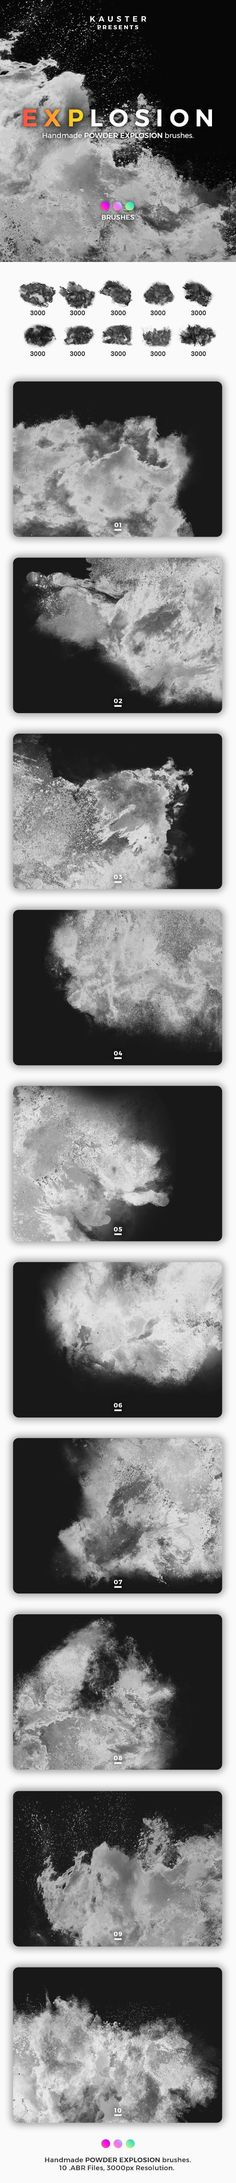 Buy Powder Explosion Brushes by kauster- on GraphicRiver. Powder Explosion Brushes This pack includes 10 Powder Explosion Brushes. Suitable for printing, web design, banners,. Best Photoshop Actions, Photoshop Tips, Photoshop Brushes, Lightroom, Grunge, Shops, Web Design, Graphic Design, Template